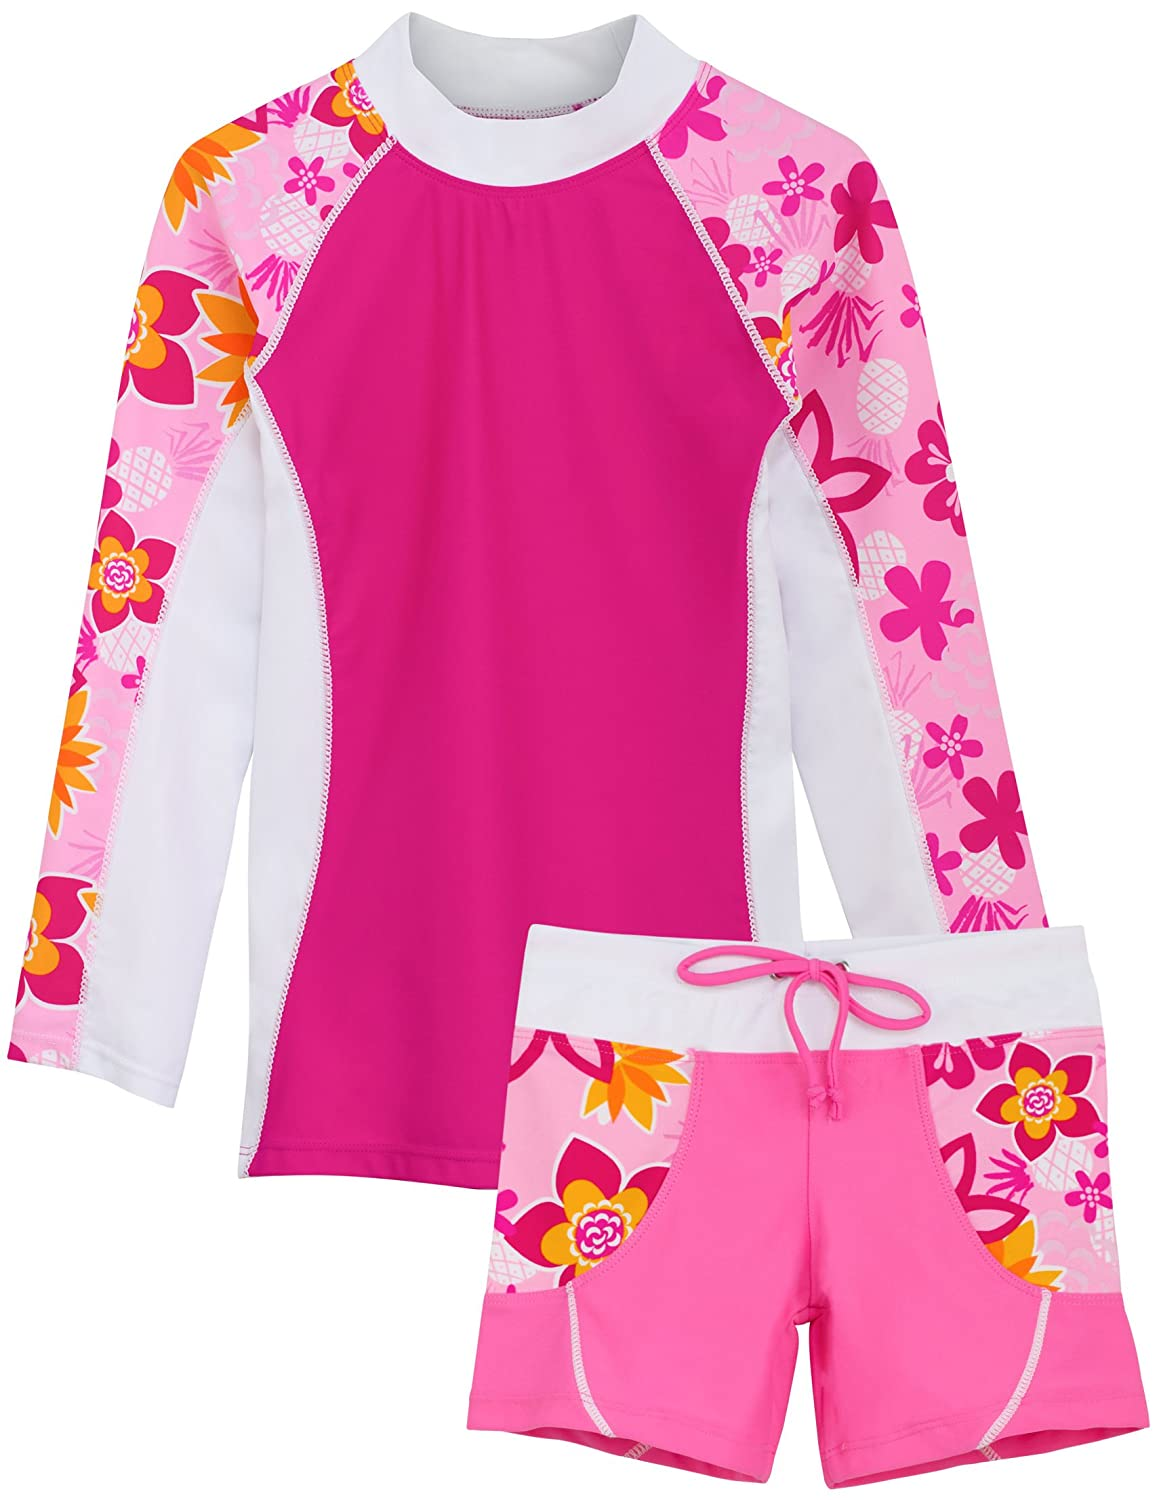 Tuga Girls Two-Piece Long Sleeve Swimsuit Set 2-14 Years, UPF 50+ Sun Protection